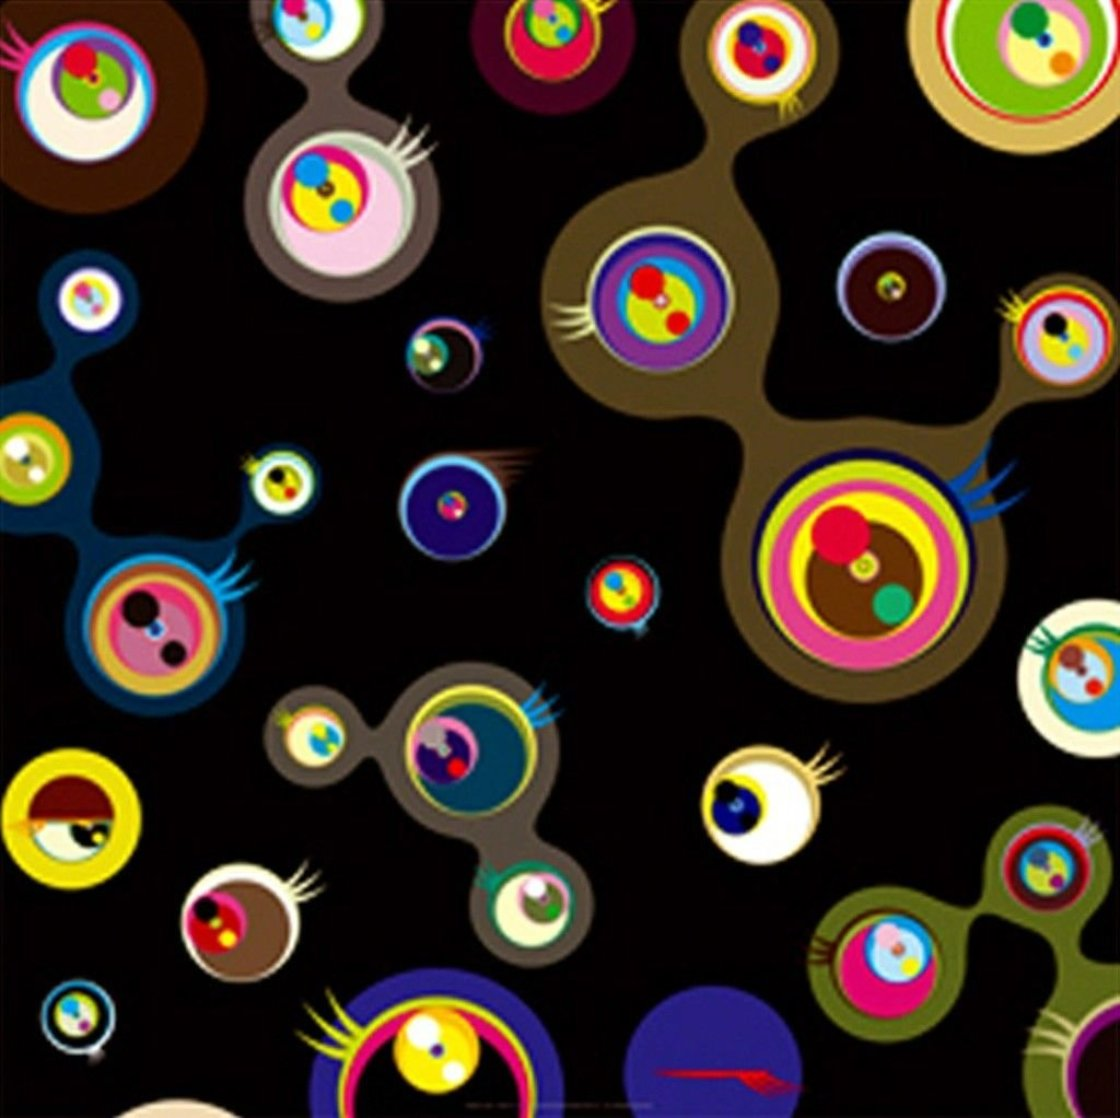 Jellyfish Eyes - Black 3 2004 Limited Edition Print by Takashi Murakami